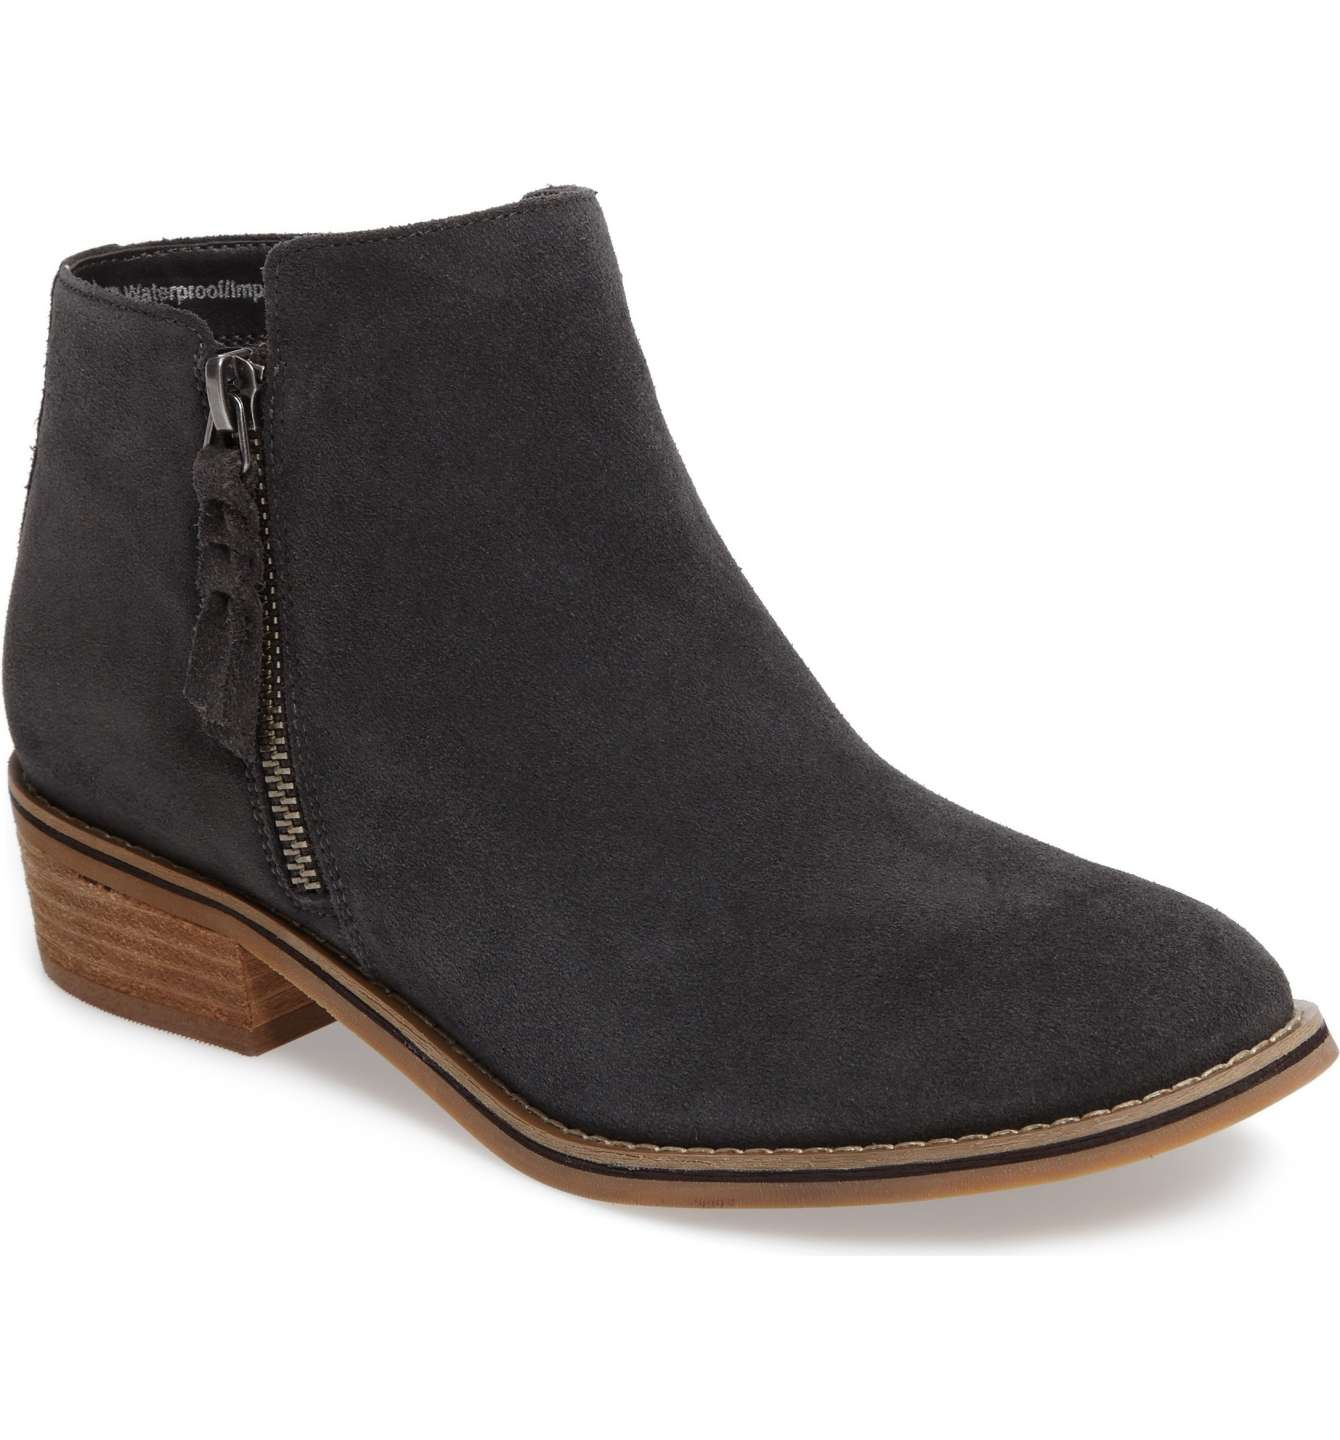 blondo waterproof bootie nordstrom sale